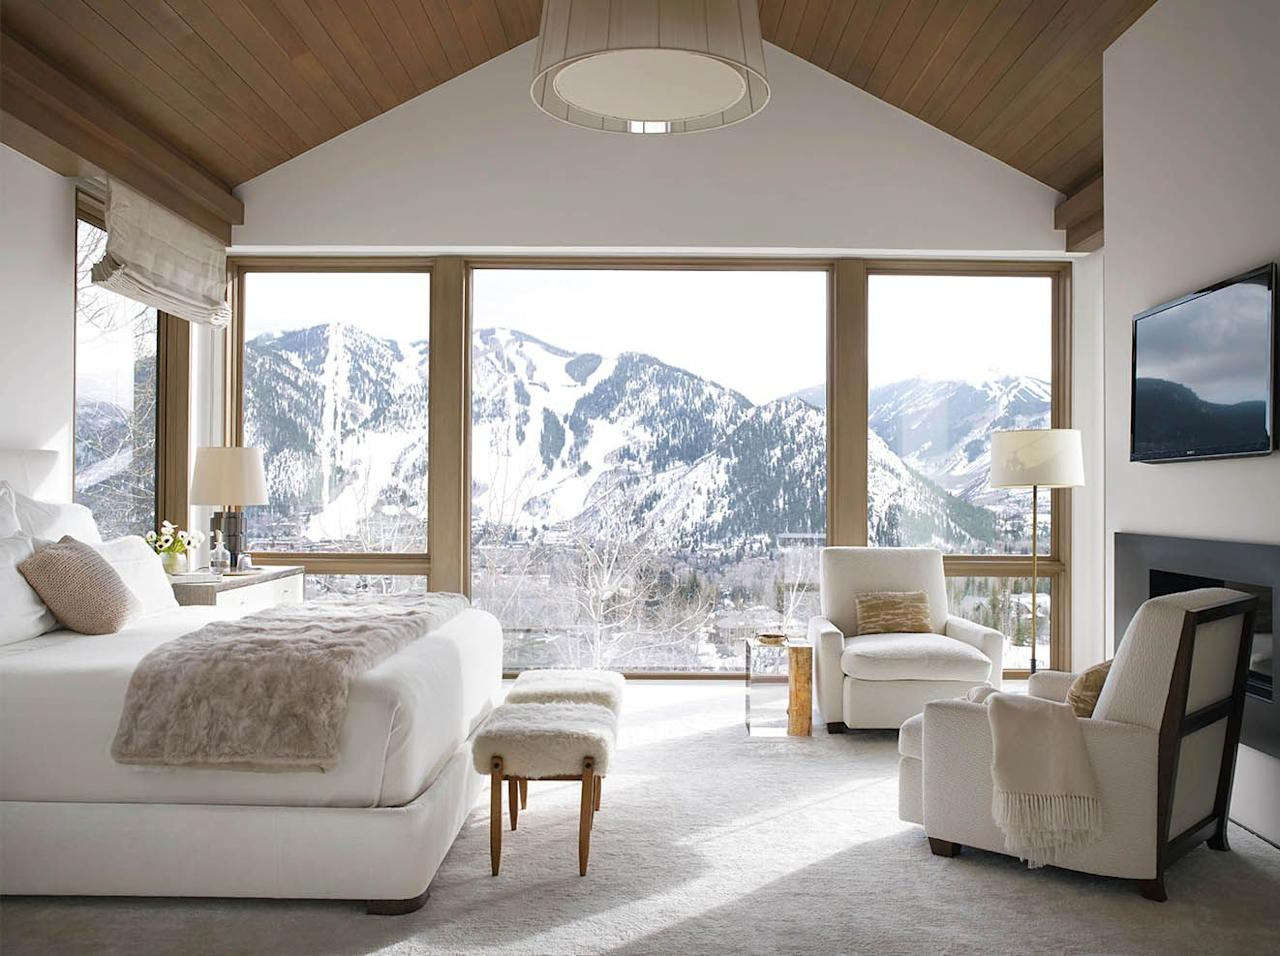 """<p>Nothing feels quite as soothing as expansive white walls and silken linens that invite you to escape from the busy world. When paired with textured fabrics, bursts of colorful art, or structured furniture, the classic shade proves how it can fill any room with a sense of sophistication. It's no wonder white bedrooms are a favorite among interior designers. Take a look at these luxury white bedroom ideas from design legends like <a href=""""https://www.thomaspheasant.com/"""" target=""""_blank"""">Thomas Pheasant</a>, <a href=""""http://www.victoriahagan.com/"""" target=""""_blank"""">Victoria Hagan</a>, and <a href=""""http://www.ashleywhittakerdesign.com/"""" target=""""_blank"""">Ashley Whittaker</a> that prove the clean shade is far from boring.</p>"""